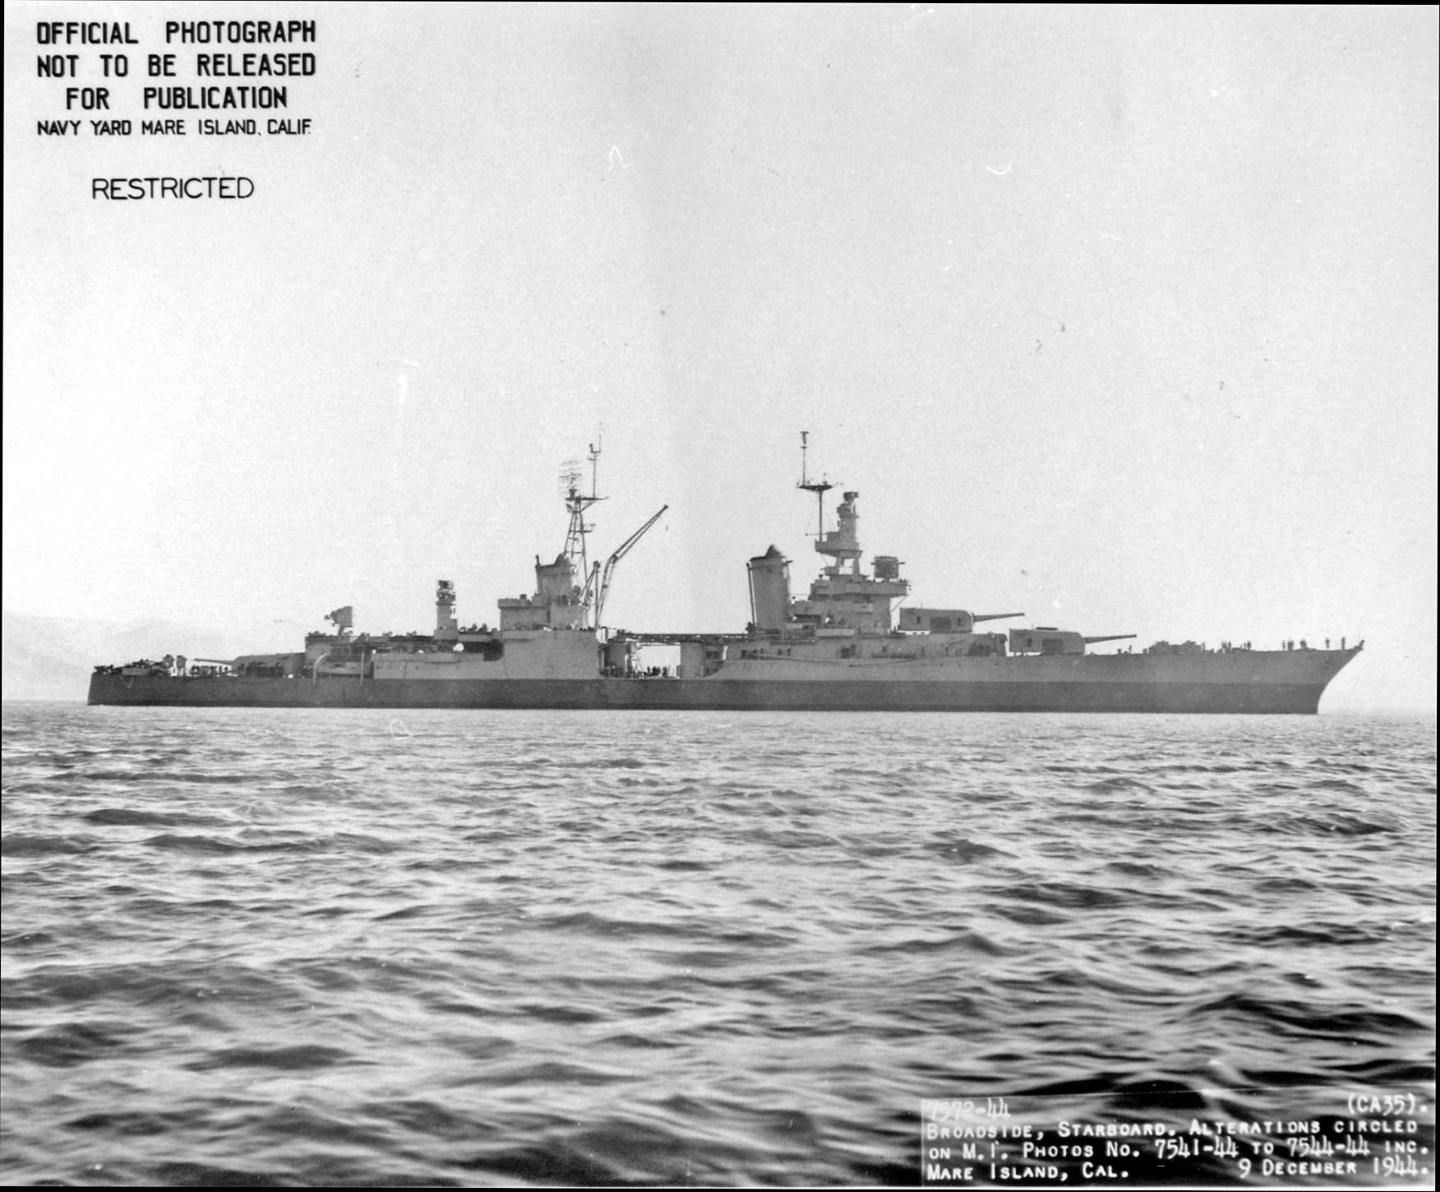 Broadside view of USS Indianapolis (CA 35) off Mare Island on 9 Dec 1944.